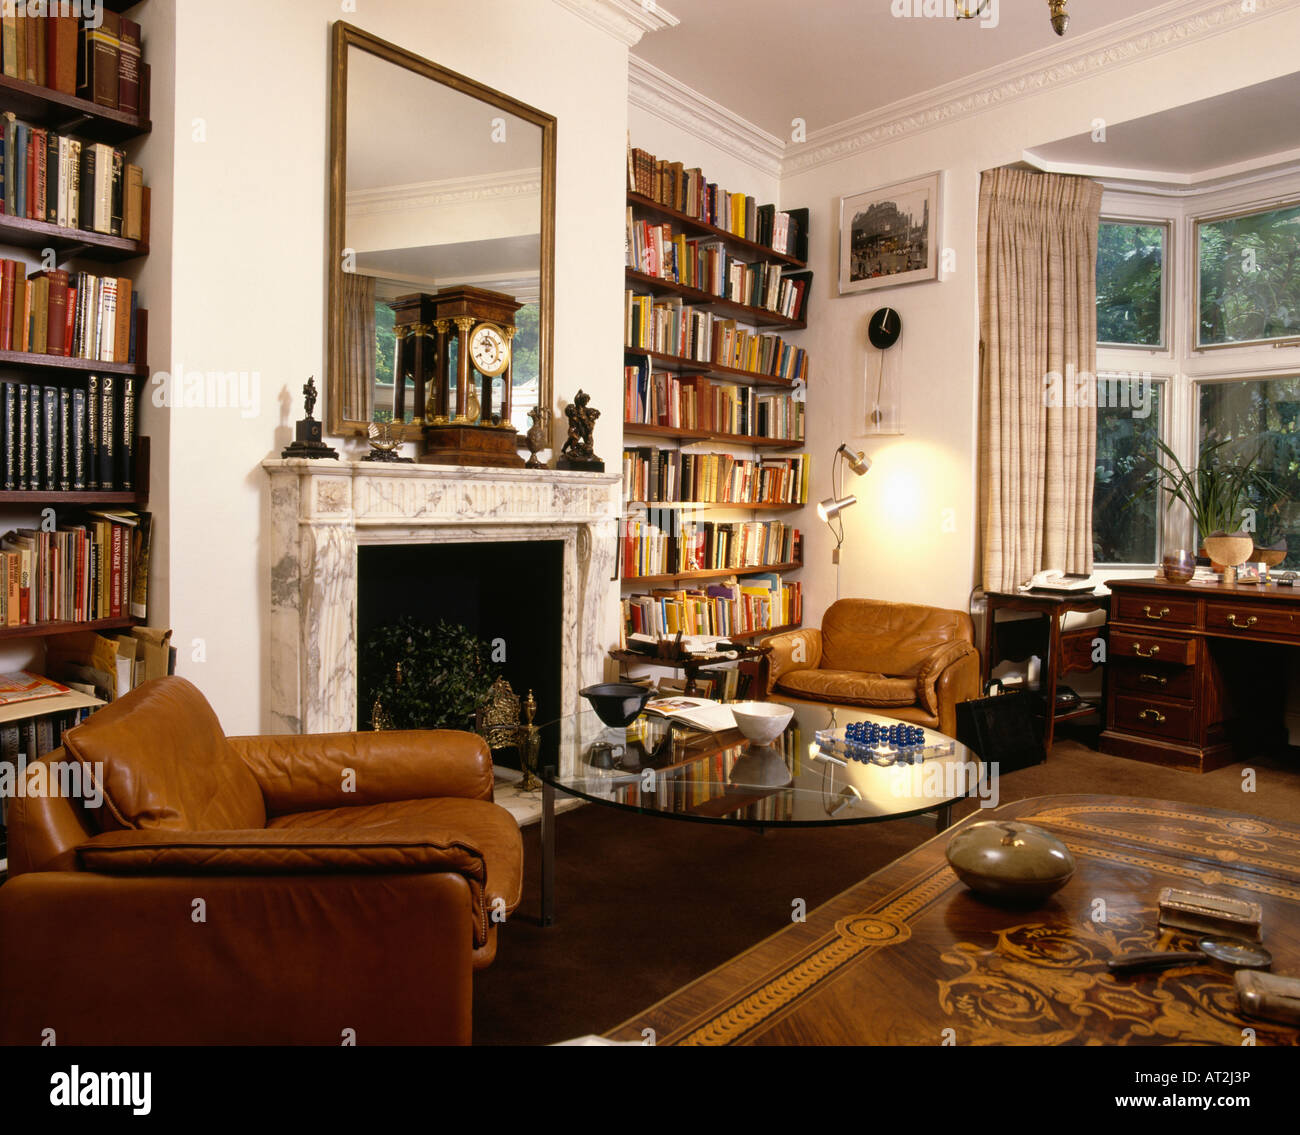 Brown Leather Armchairs In Seventies Living Room With Bookshelves And Stock Photo Alamy